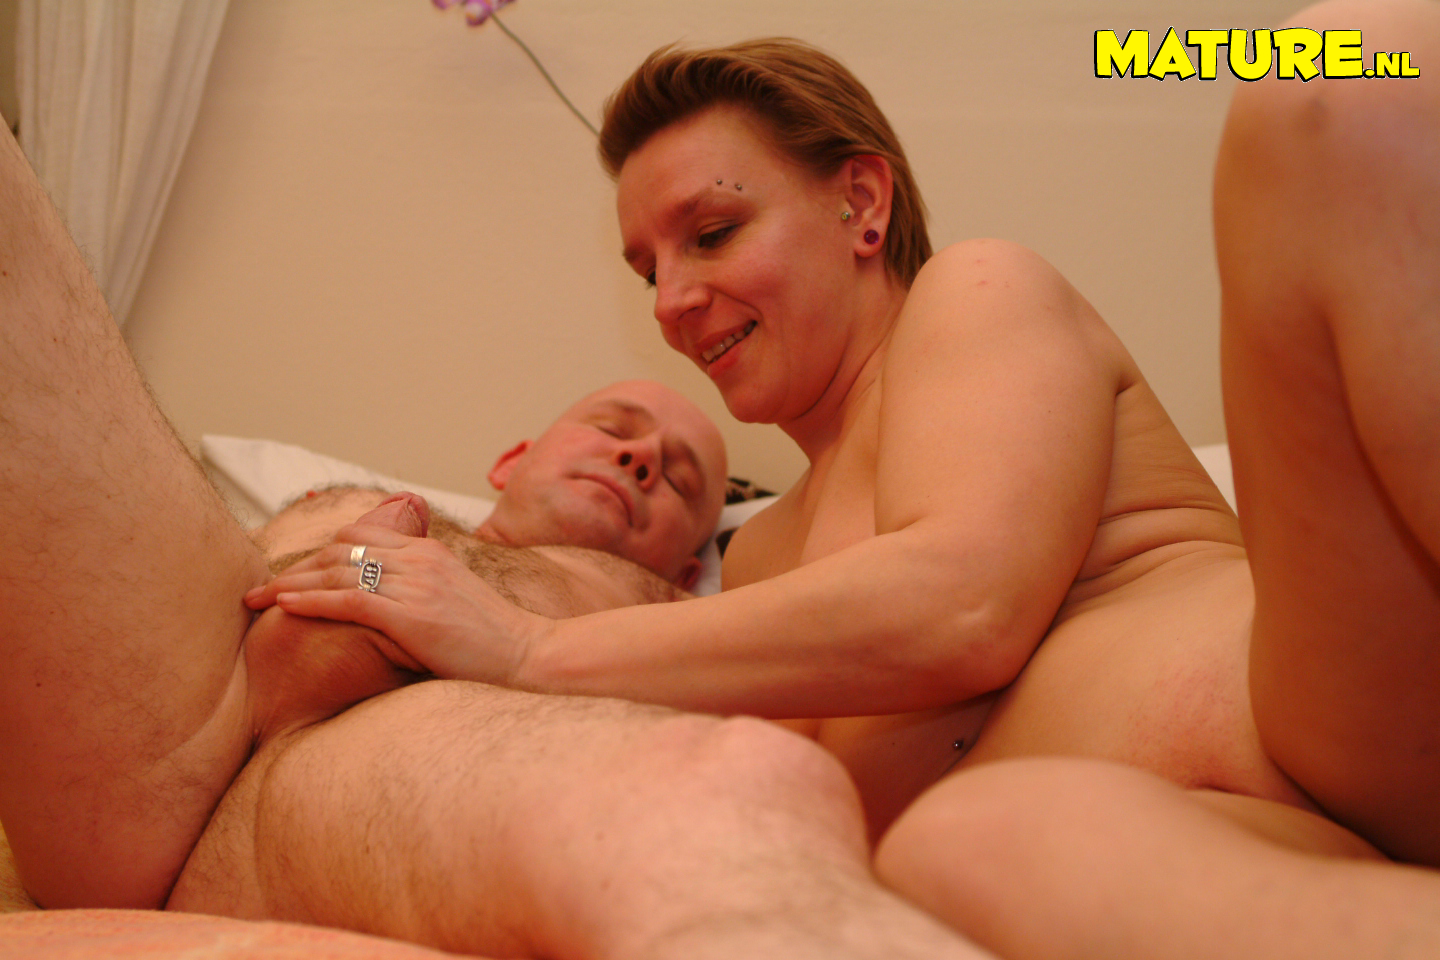 Mature porn amateus videos